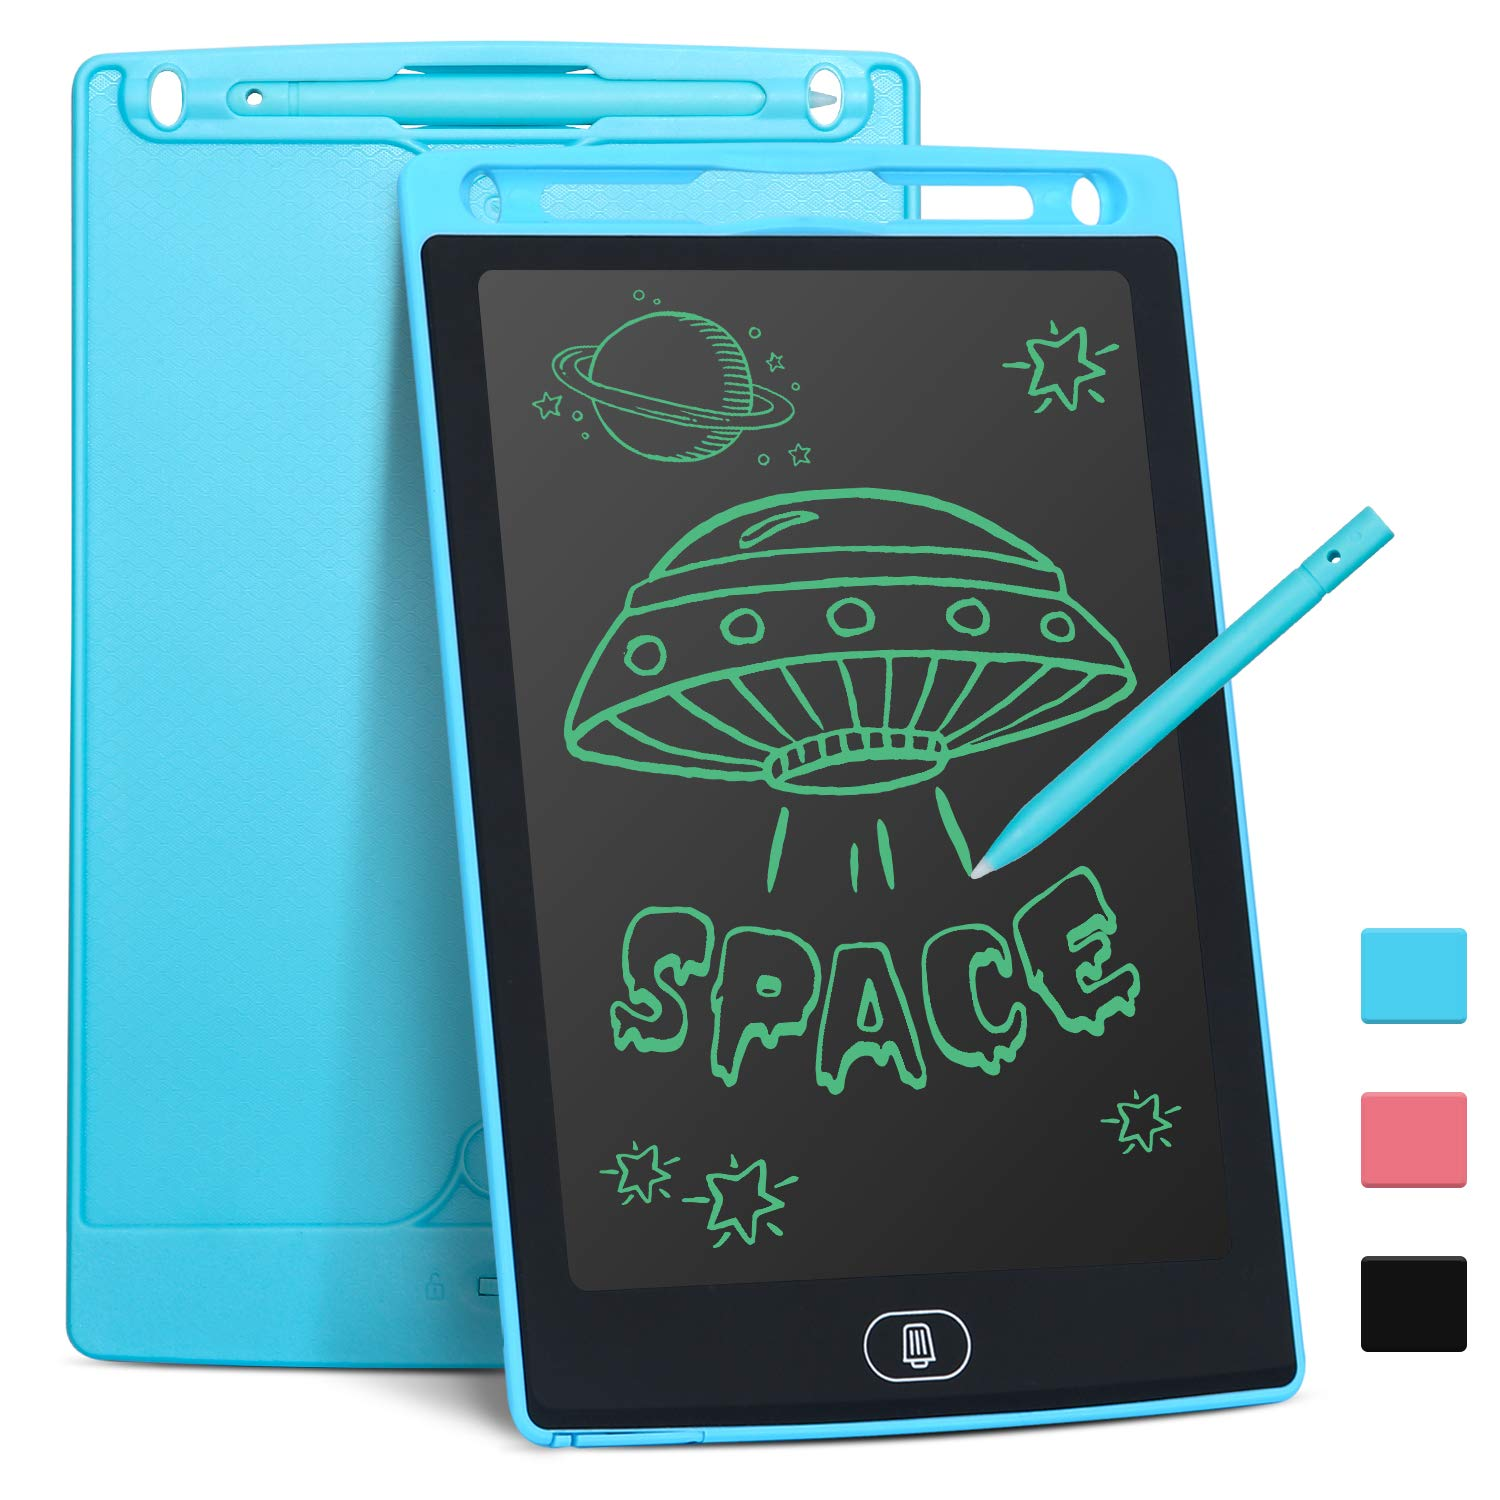 LCD Writing Tablet for Kids 8.5 Inch, Bropang Drawing Board Doodle Board Writing Pad Reusable Portable Ewriter Educational Toys, Gift for Kids Student Teacher Adults at Home, School and Office(Blue)